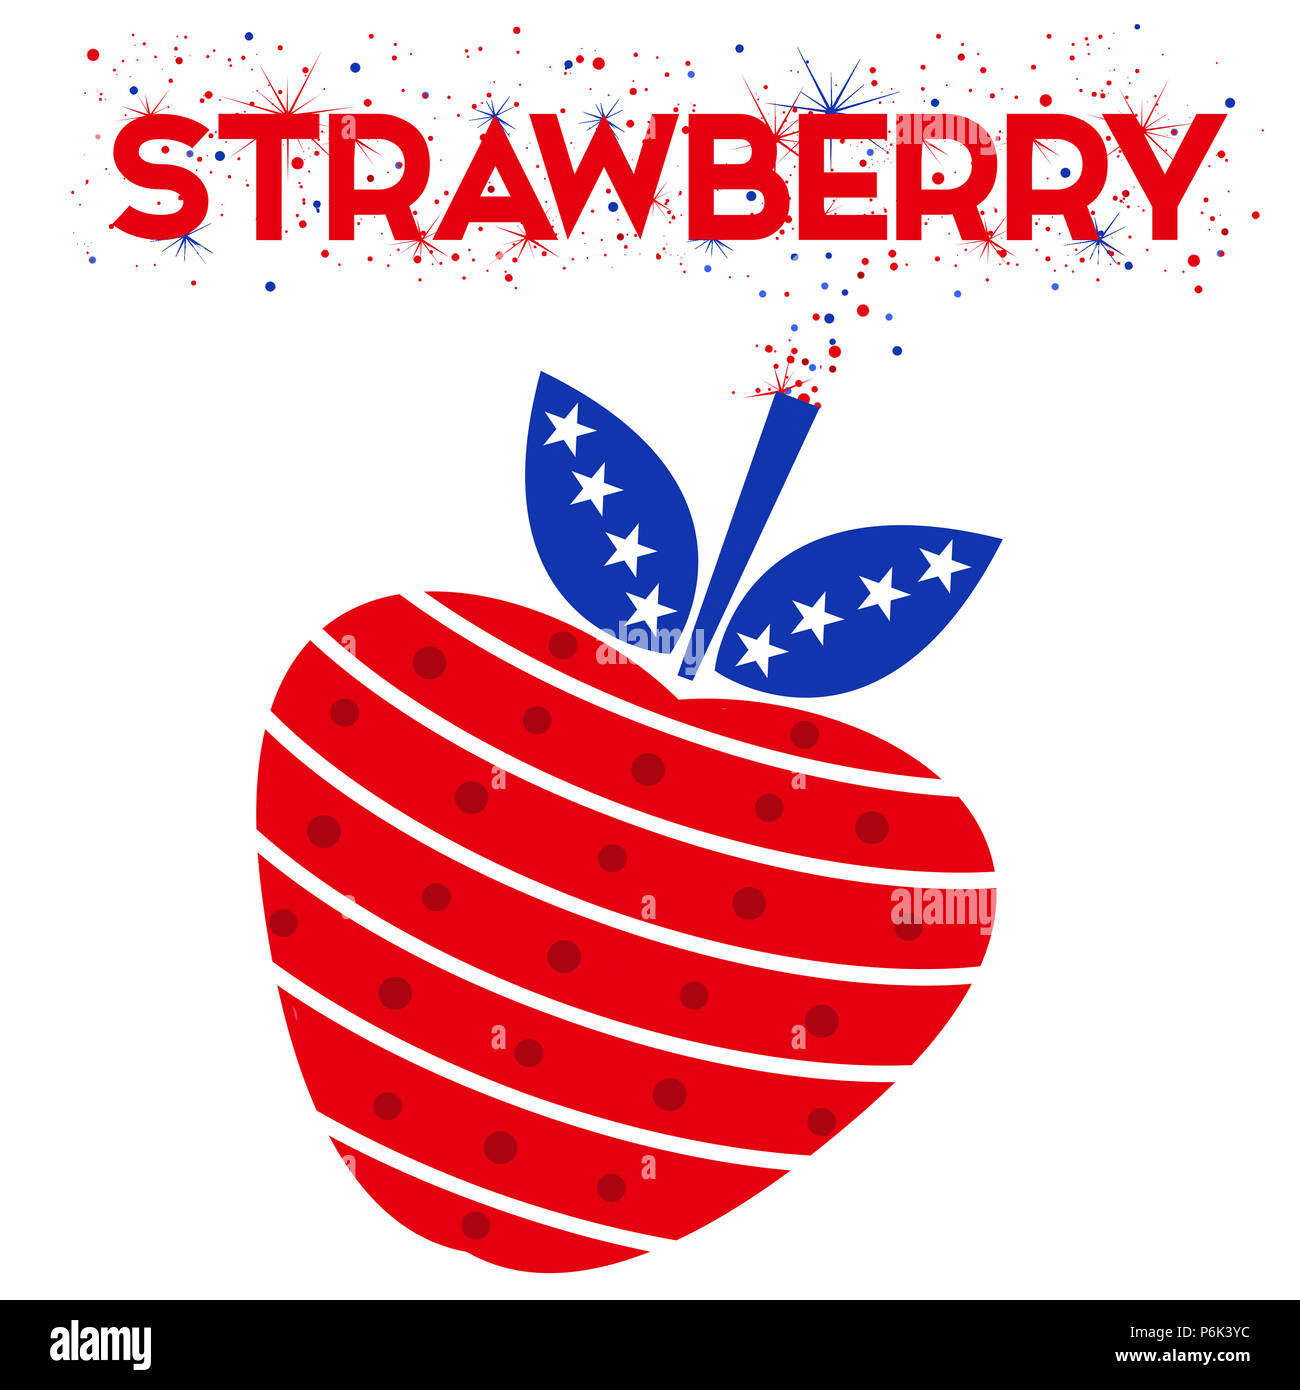 Illustration of a strawberry as a firecracker. Red, white and blue colors in a stars and stripes pattern. Holiday, modern, exciting. - Stock Image